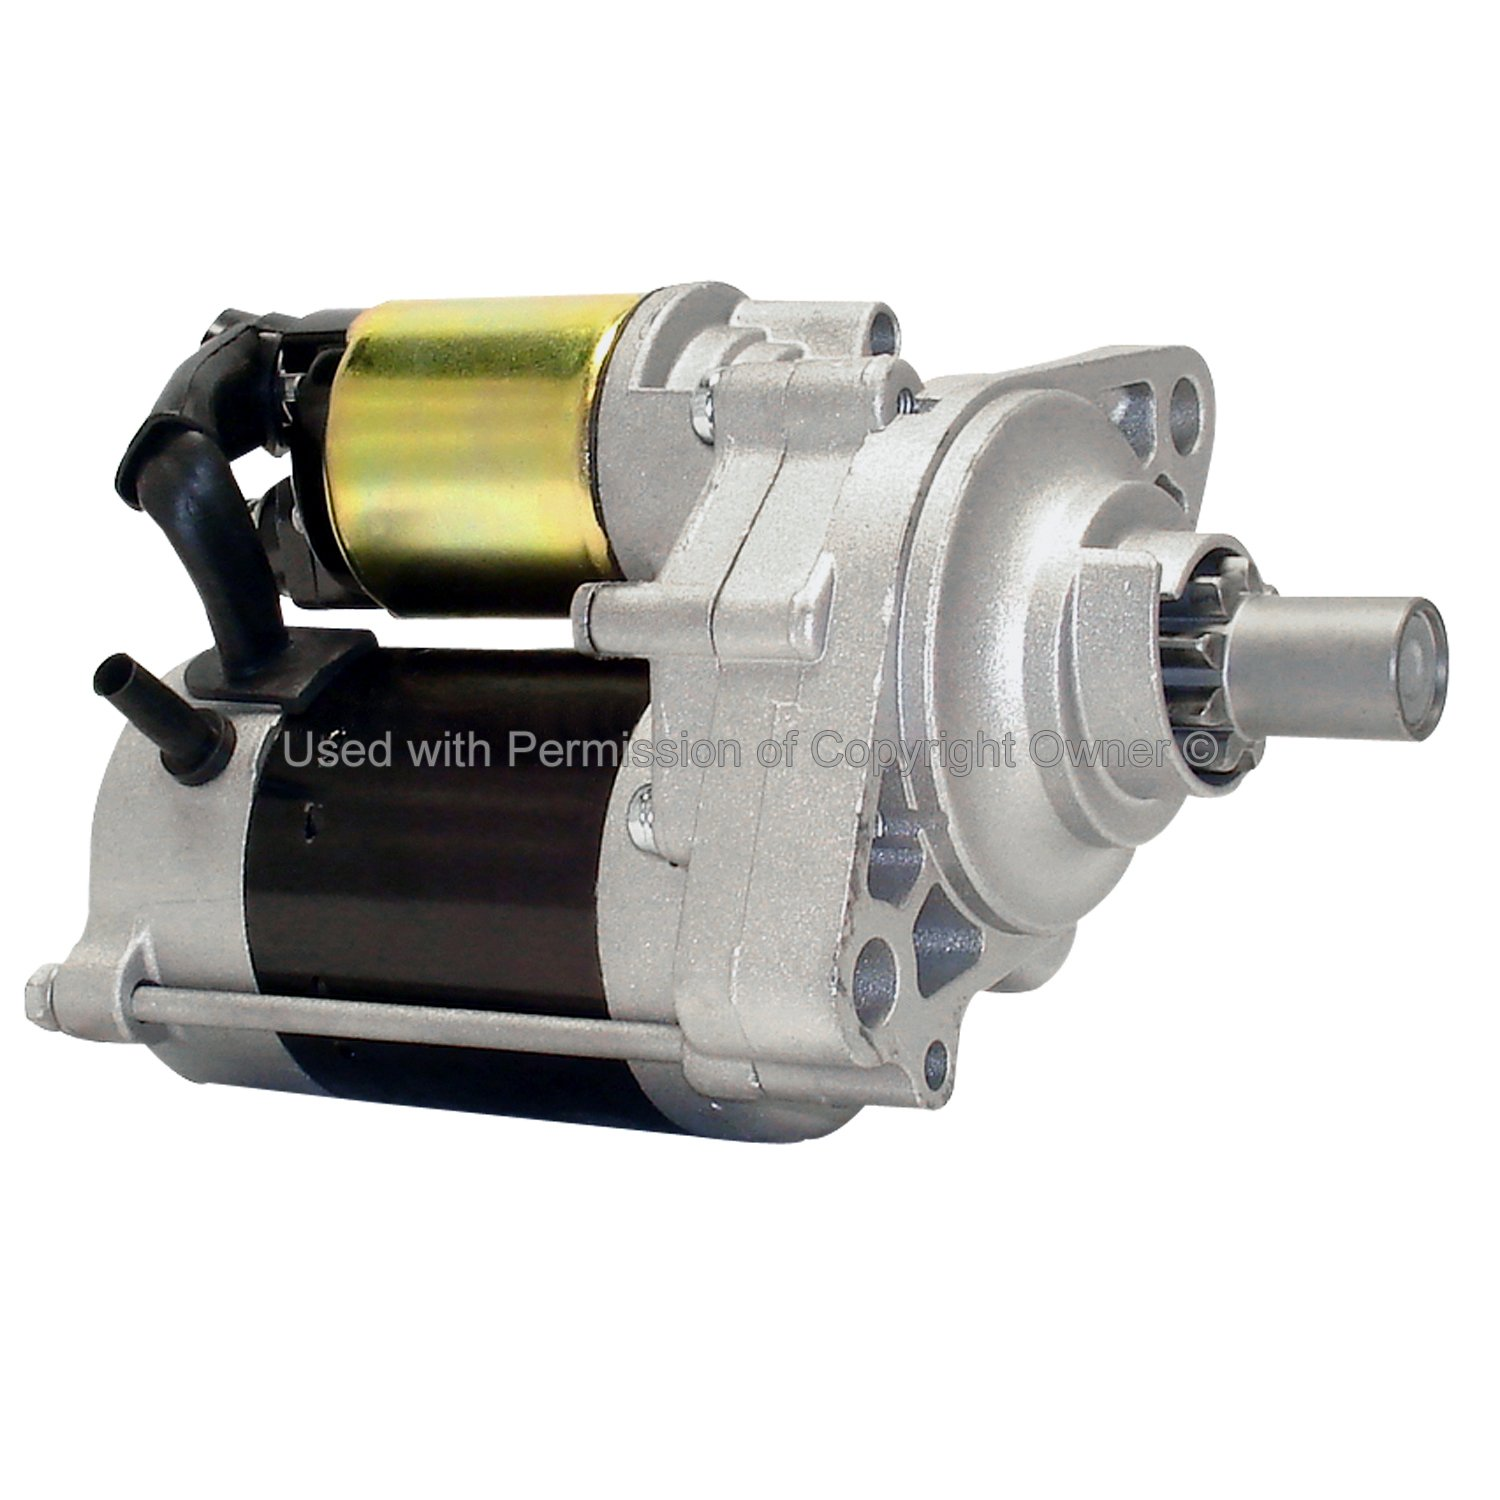 Enjoyable 1993 Honda Accord Starter Motor Autopartskart Com Wiring Cloud Eachirenstrafr09Org